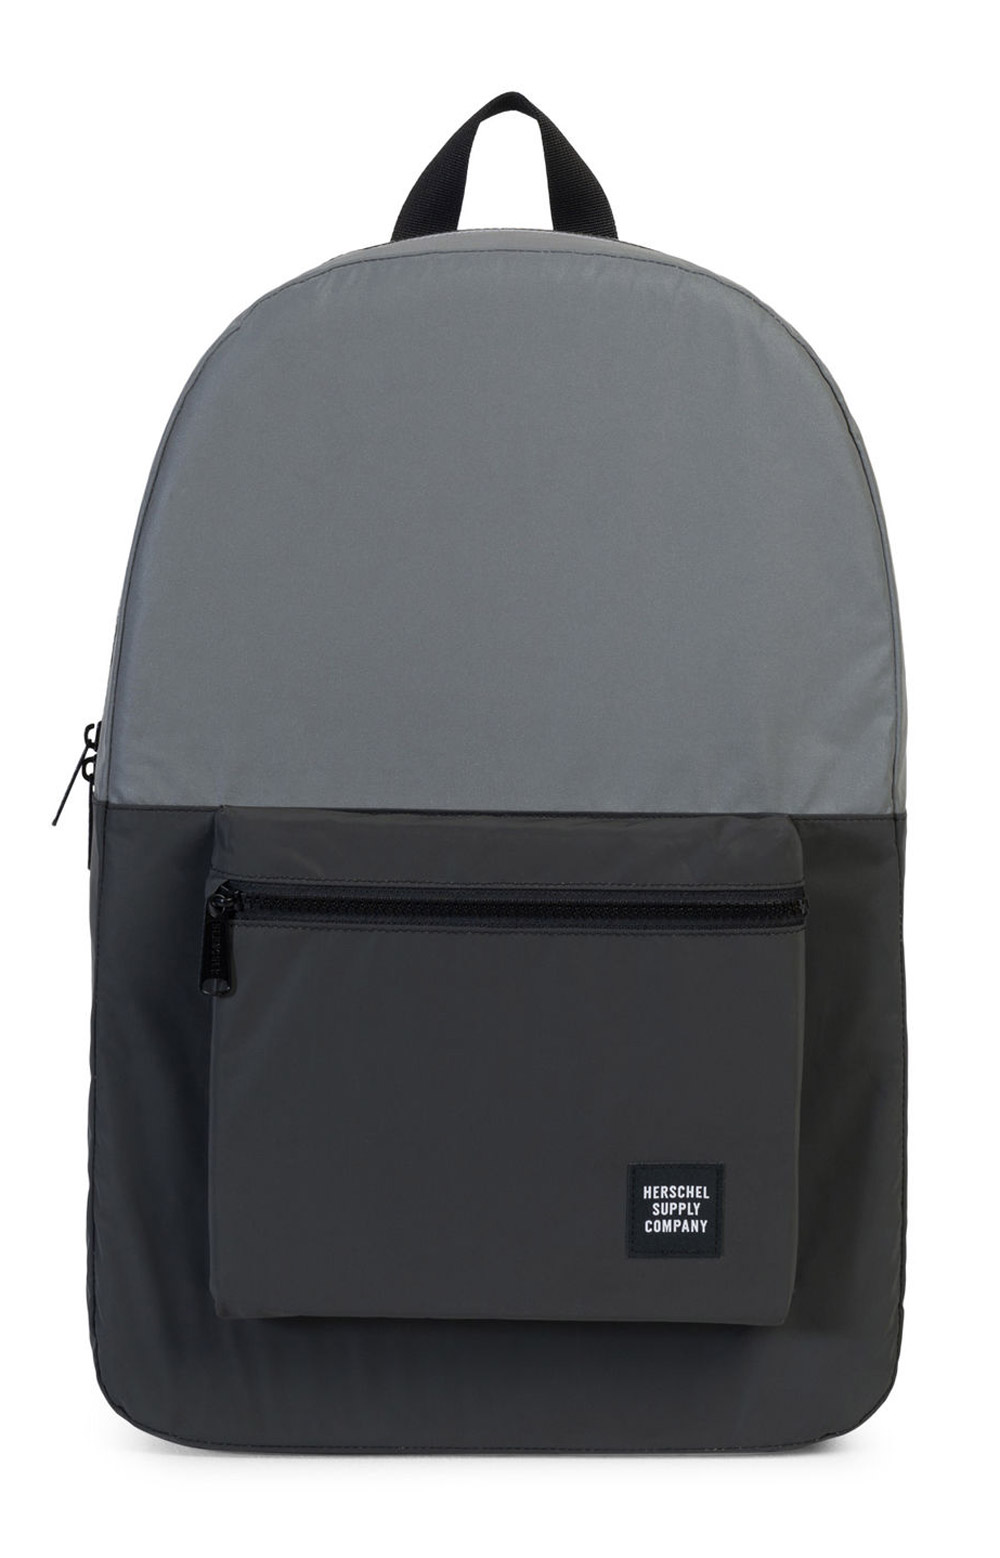 Packable Daypack - Silver/Black Reflective